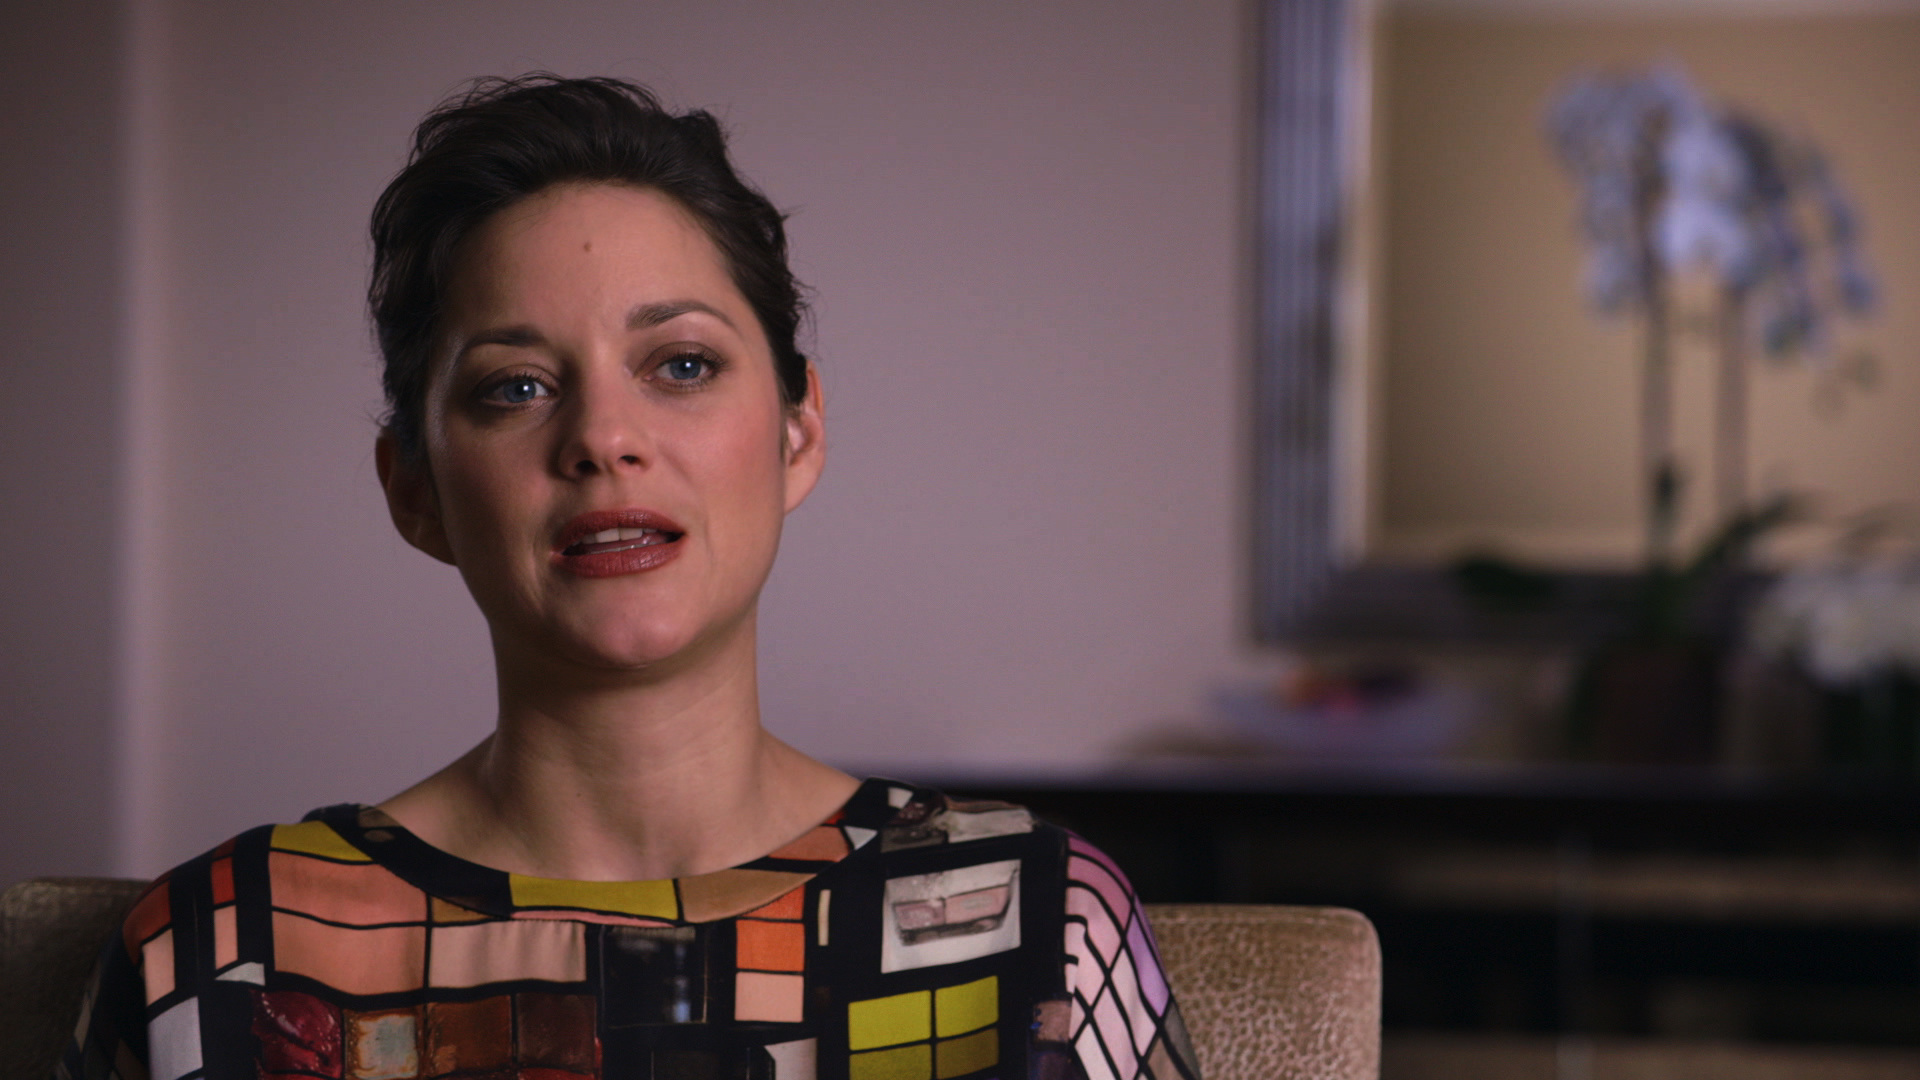 Marion Cotillard on Getting into Character for Two Days, One Night